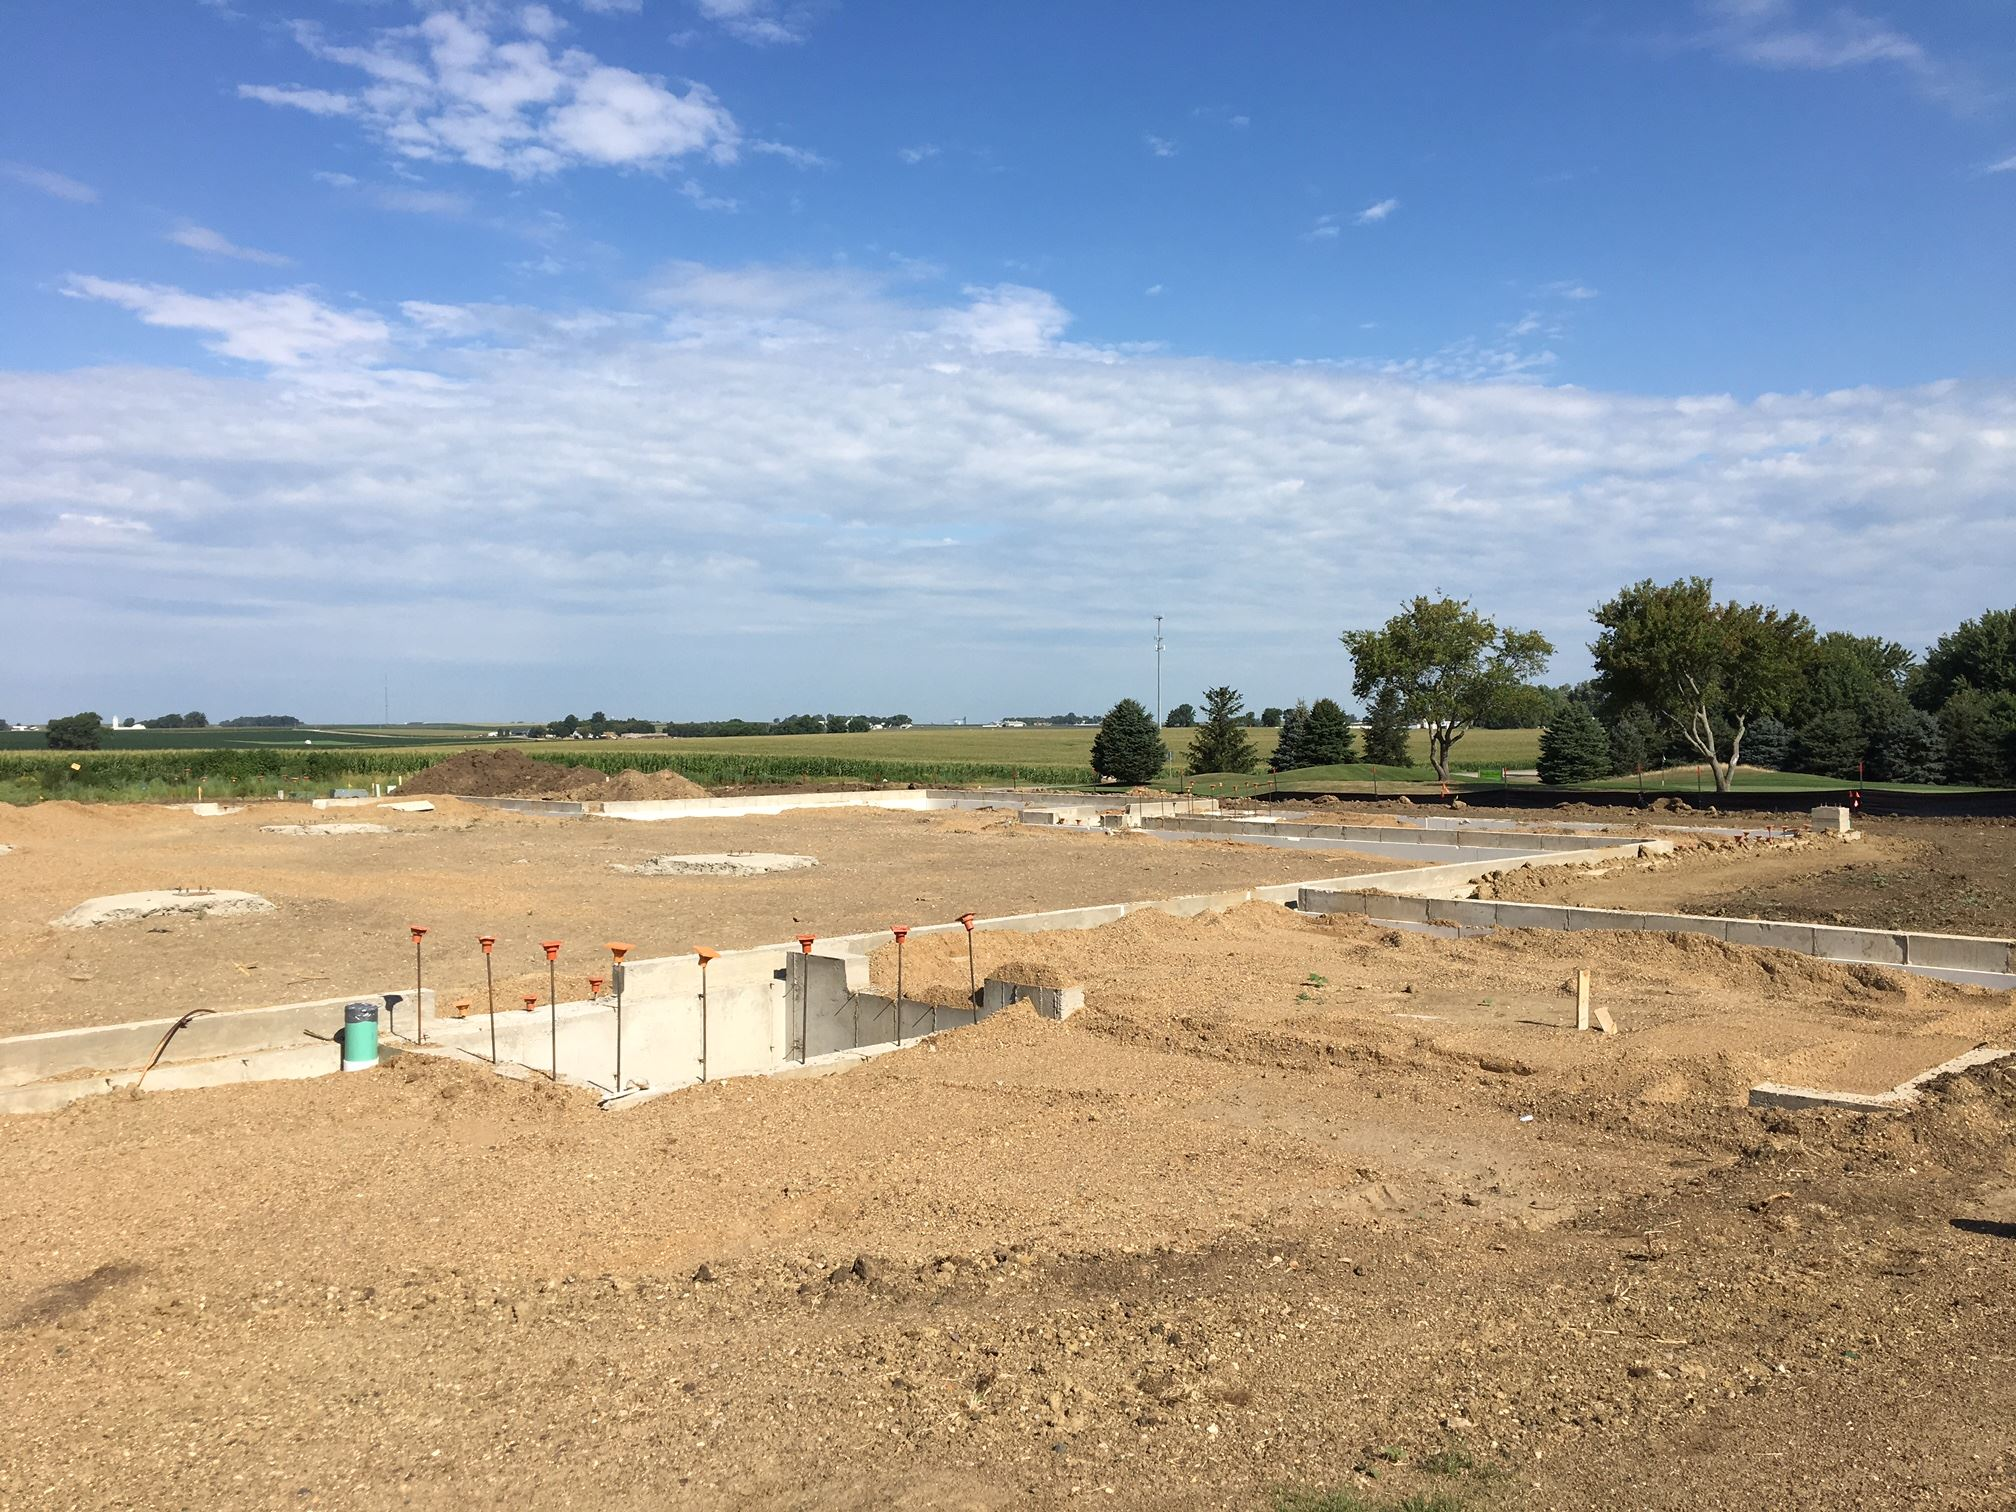 4 Brothers Bar and Grill construction site in Sioux Center